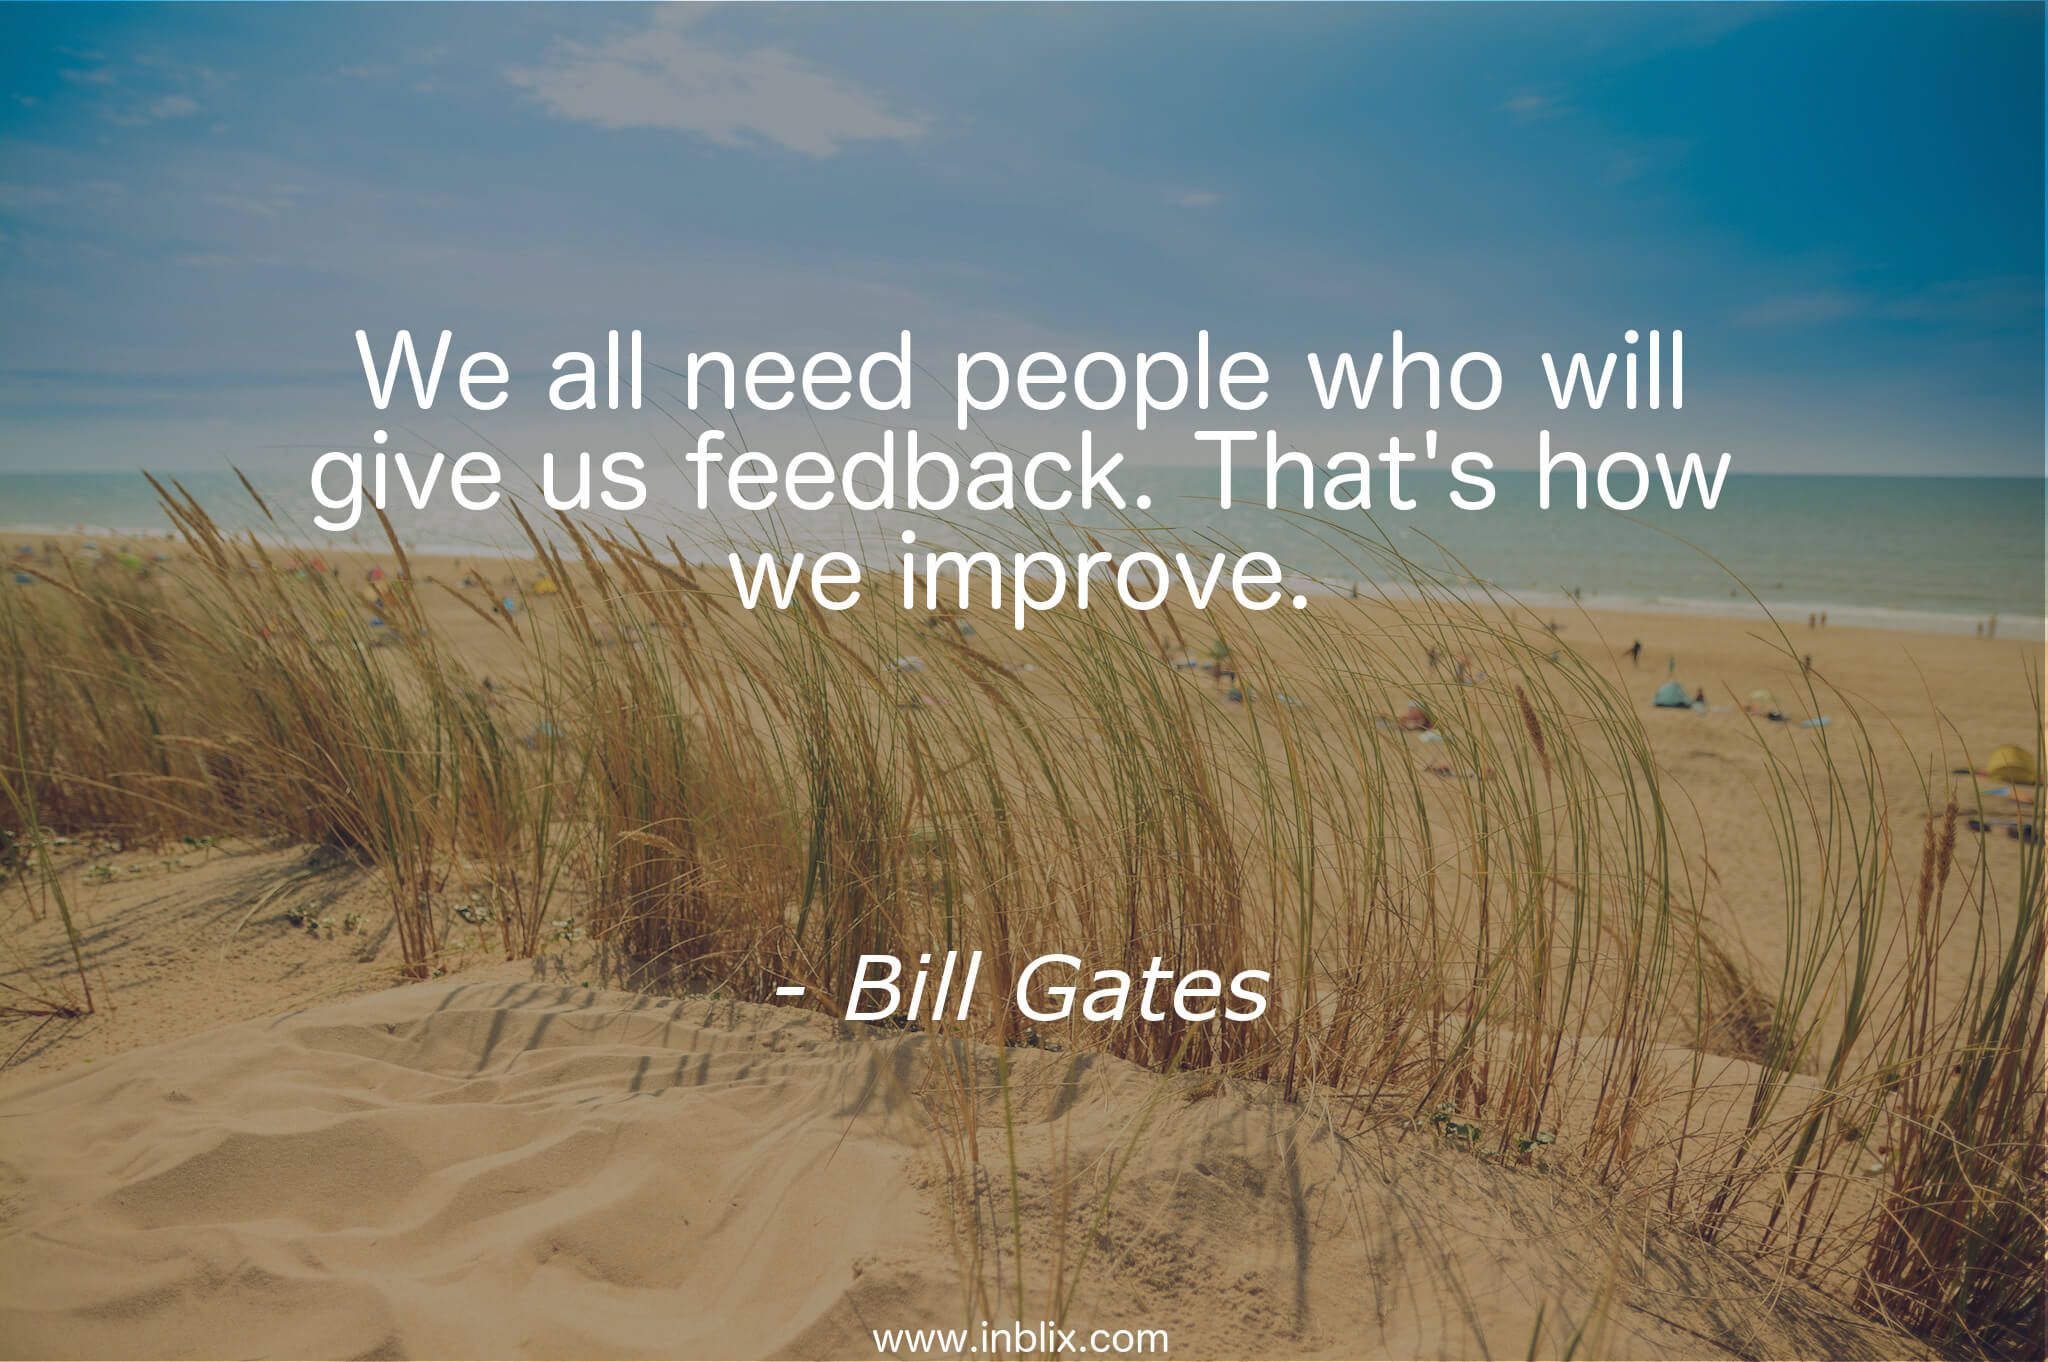 We all need people who will give us feedback. That's how we improve.